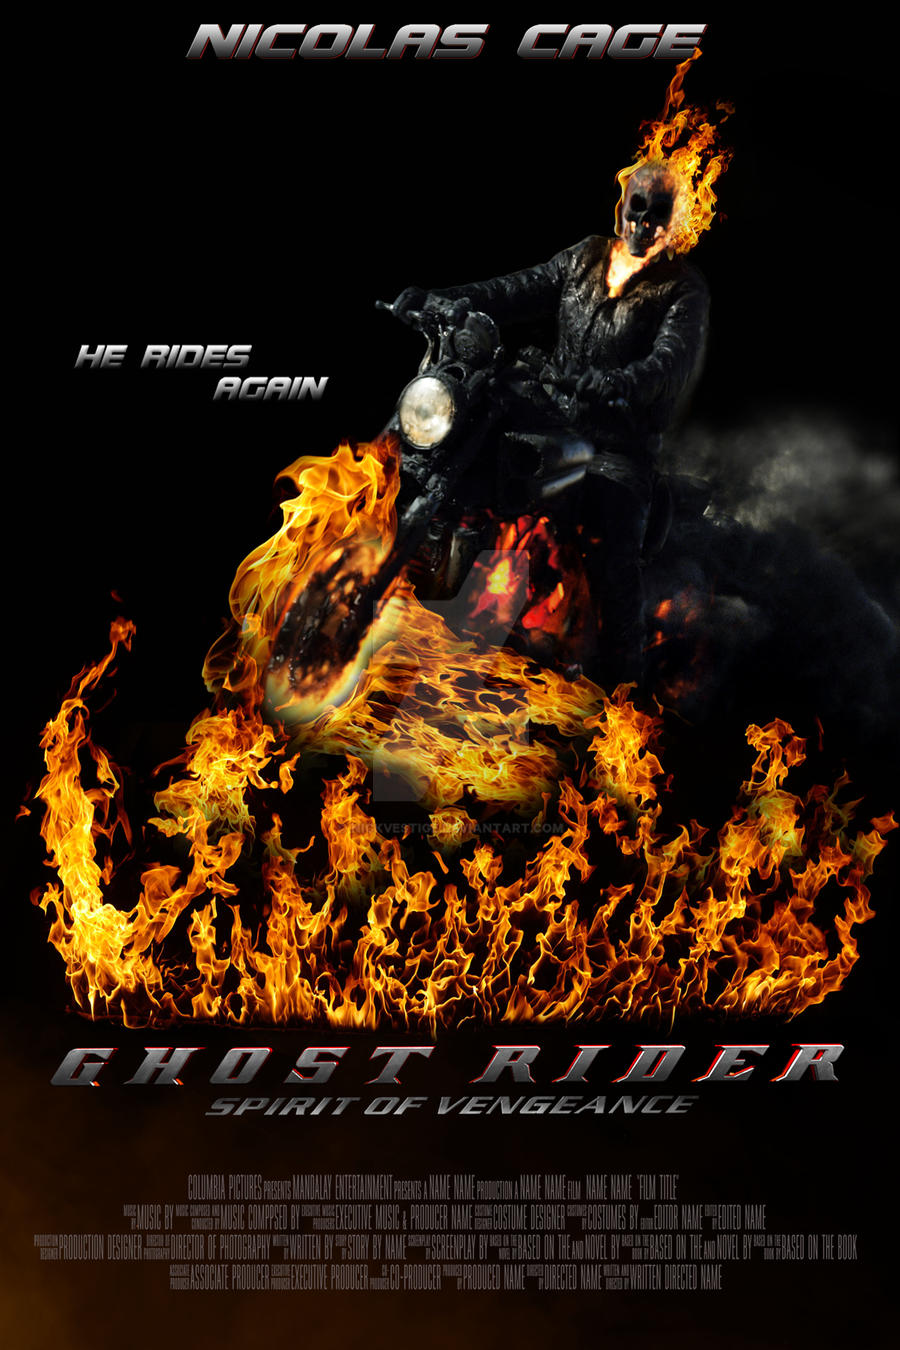 Group of Ghost Rider 2 Spirit